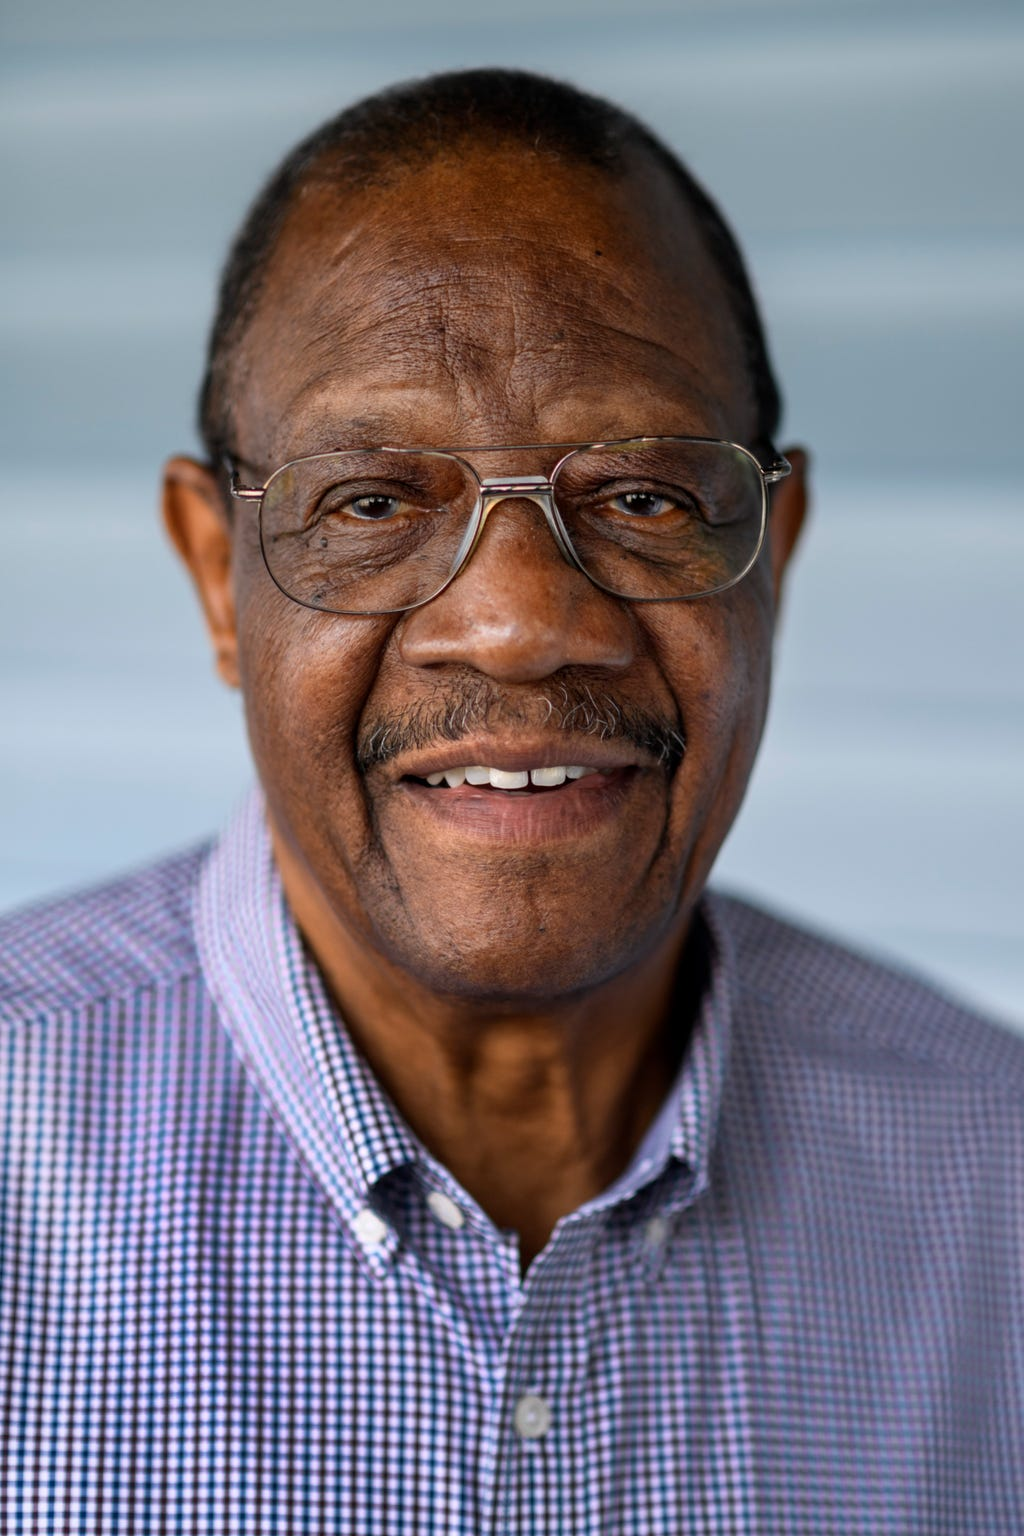 George Flowers, 80, is a 1956 graduate of Lincoln High School, an all-black segregated high school until 1962, in Evansville. He went on to become the city's first African American Fire Chief.